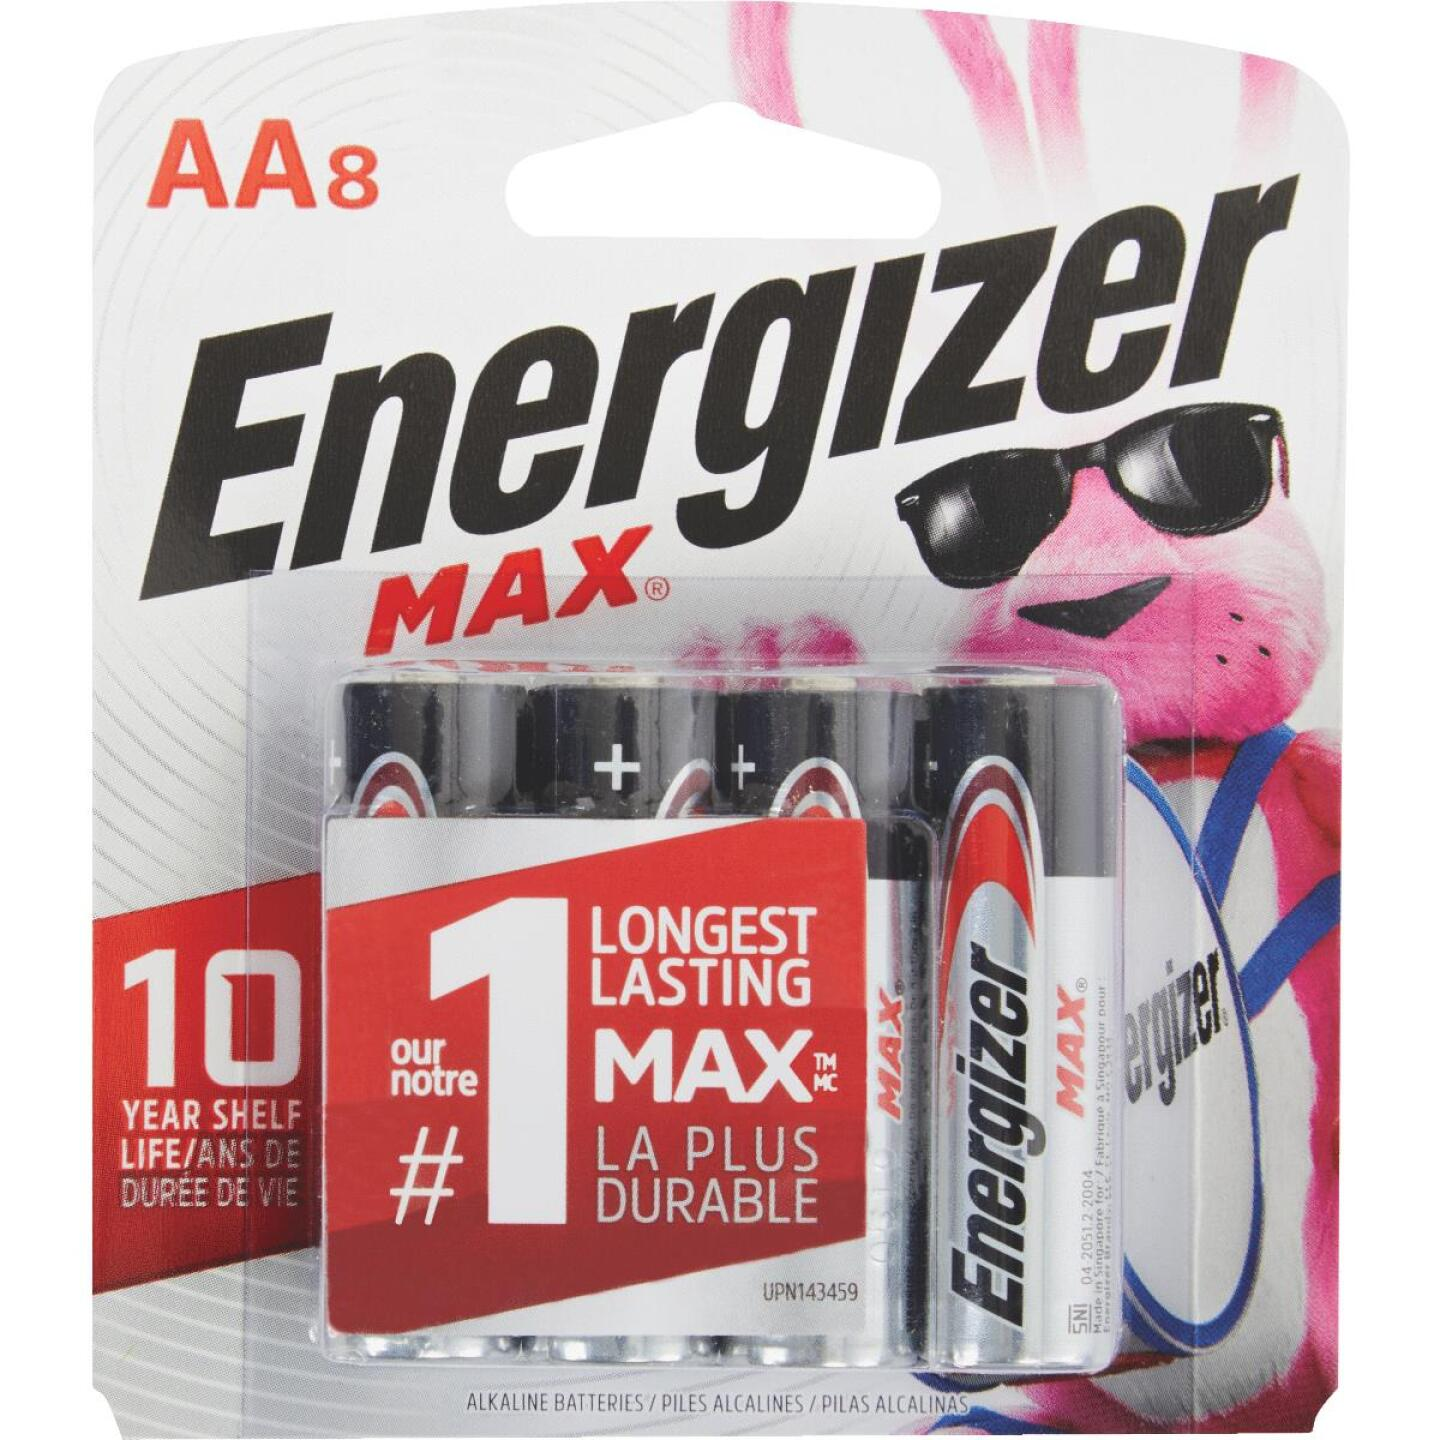 Energizer Max AA Alkaline Battery (8-Pack) Image 2